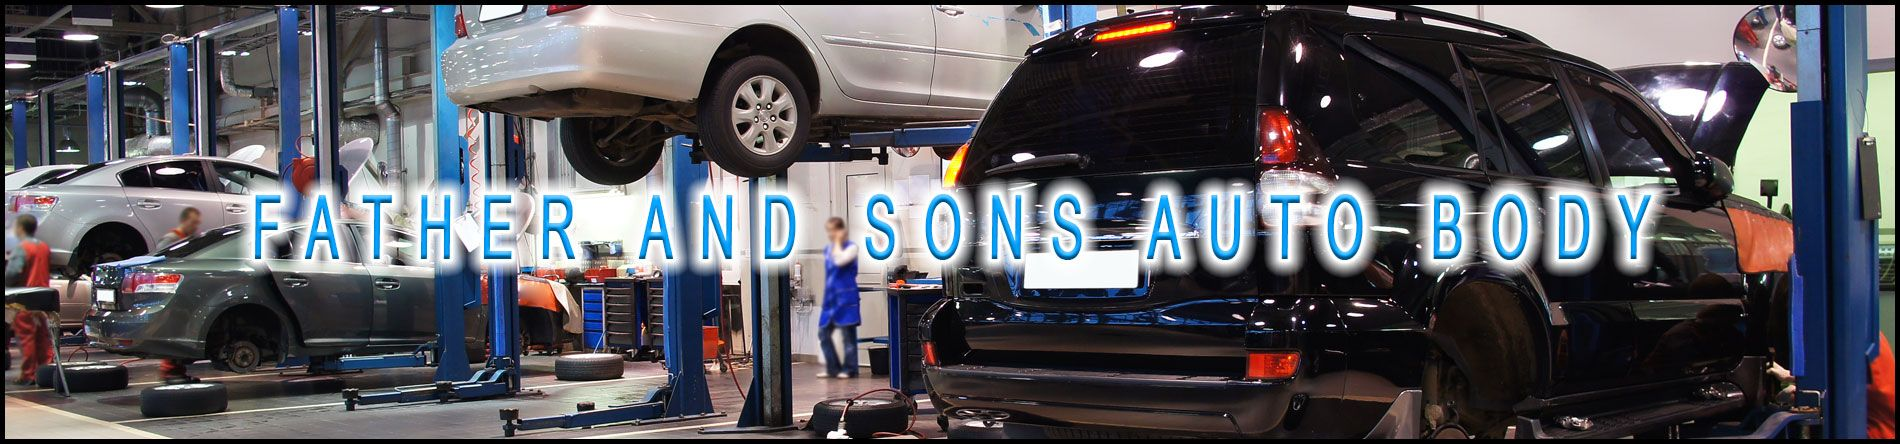 Father and Sons Auto Body is an Auto Repair Shop in